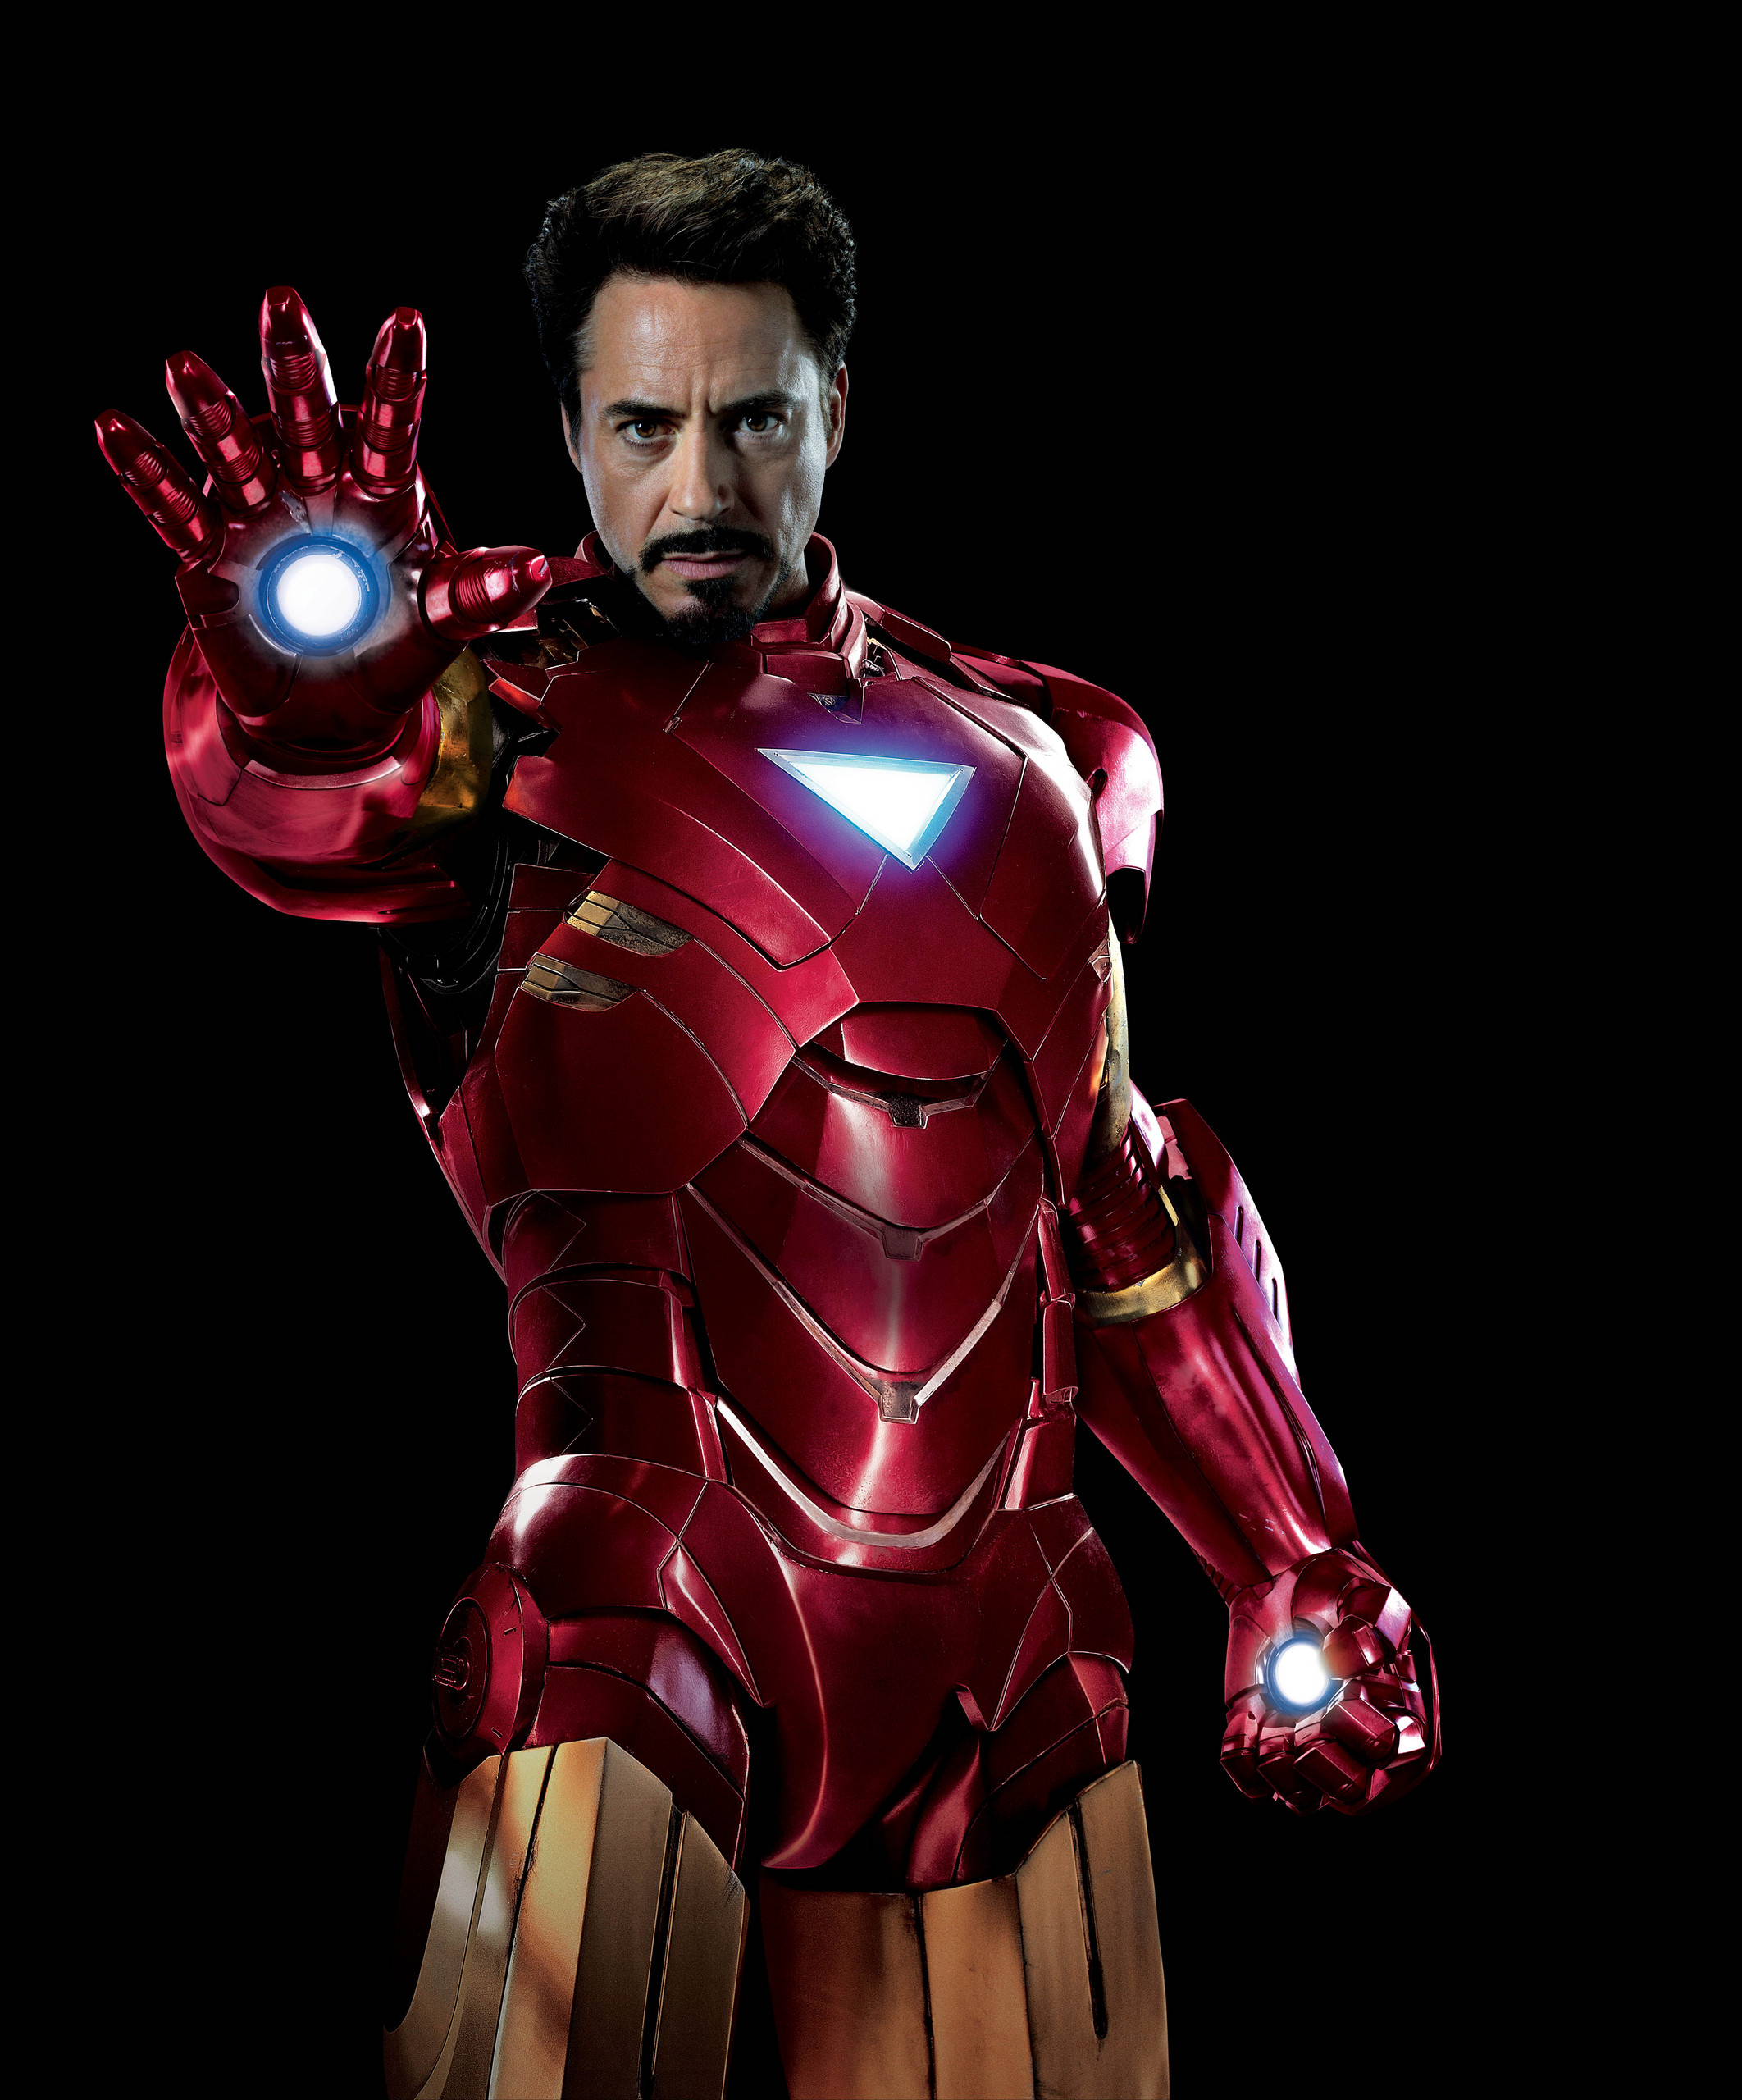 Iron Man Actor 119.91 Kb